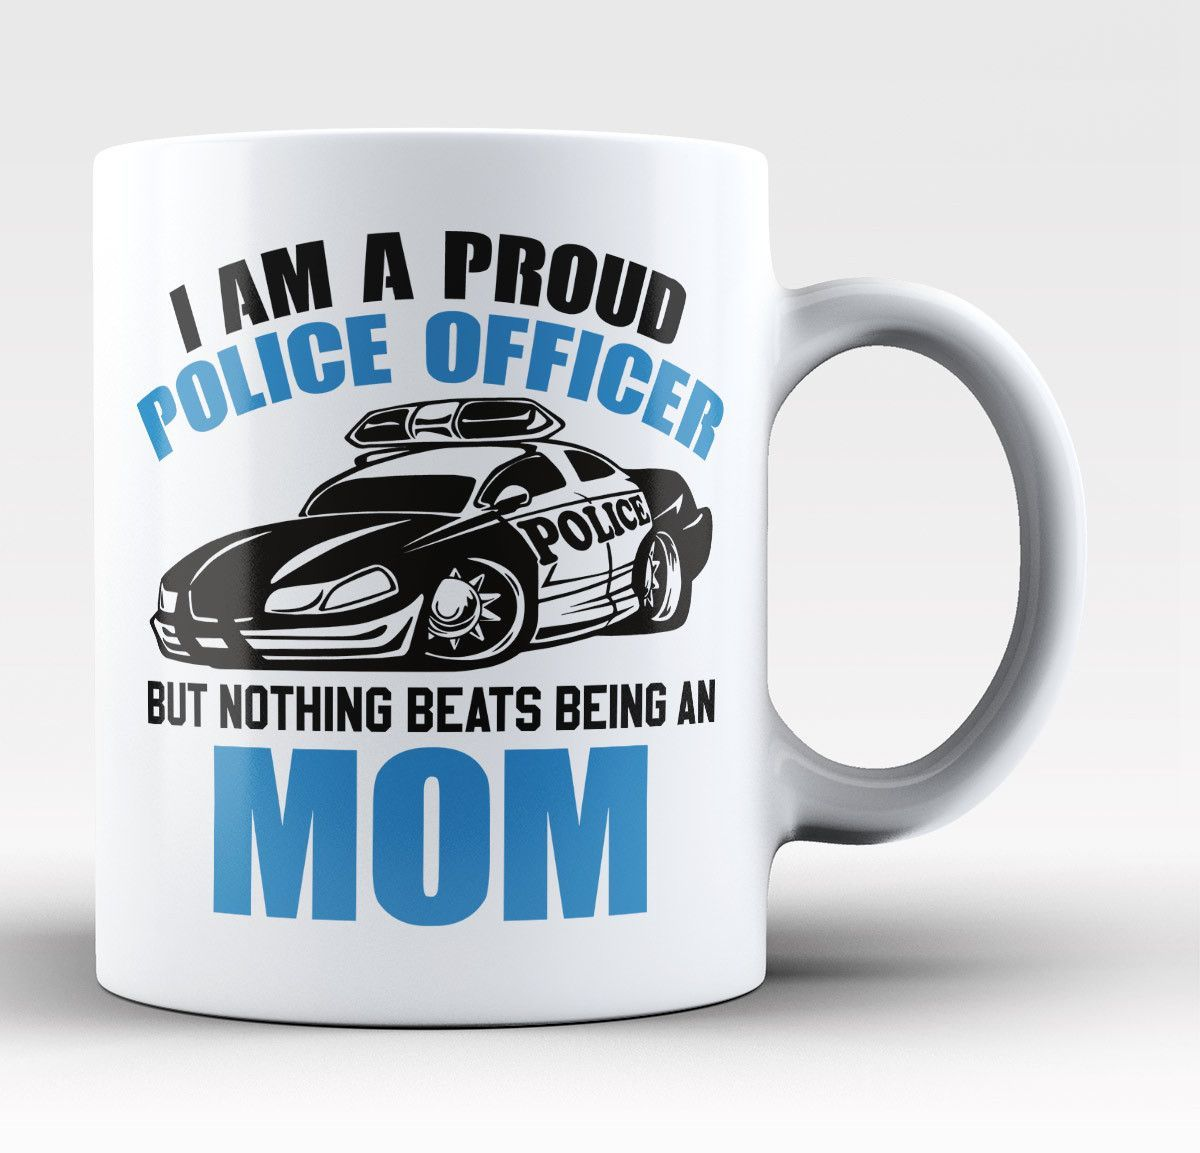 Proud Police Officer - Nothing Beats Being a Mom - Mug